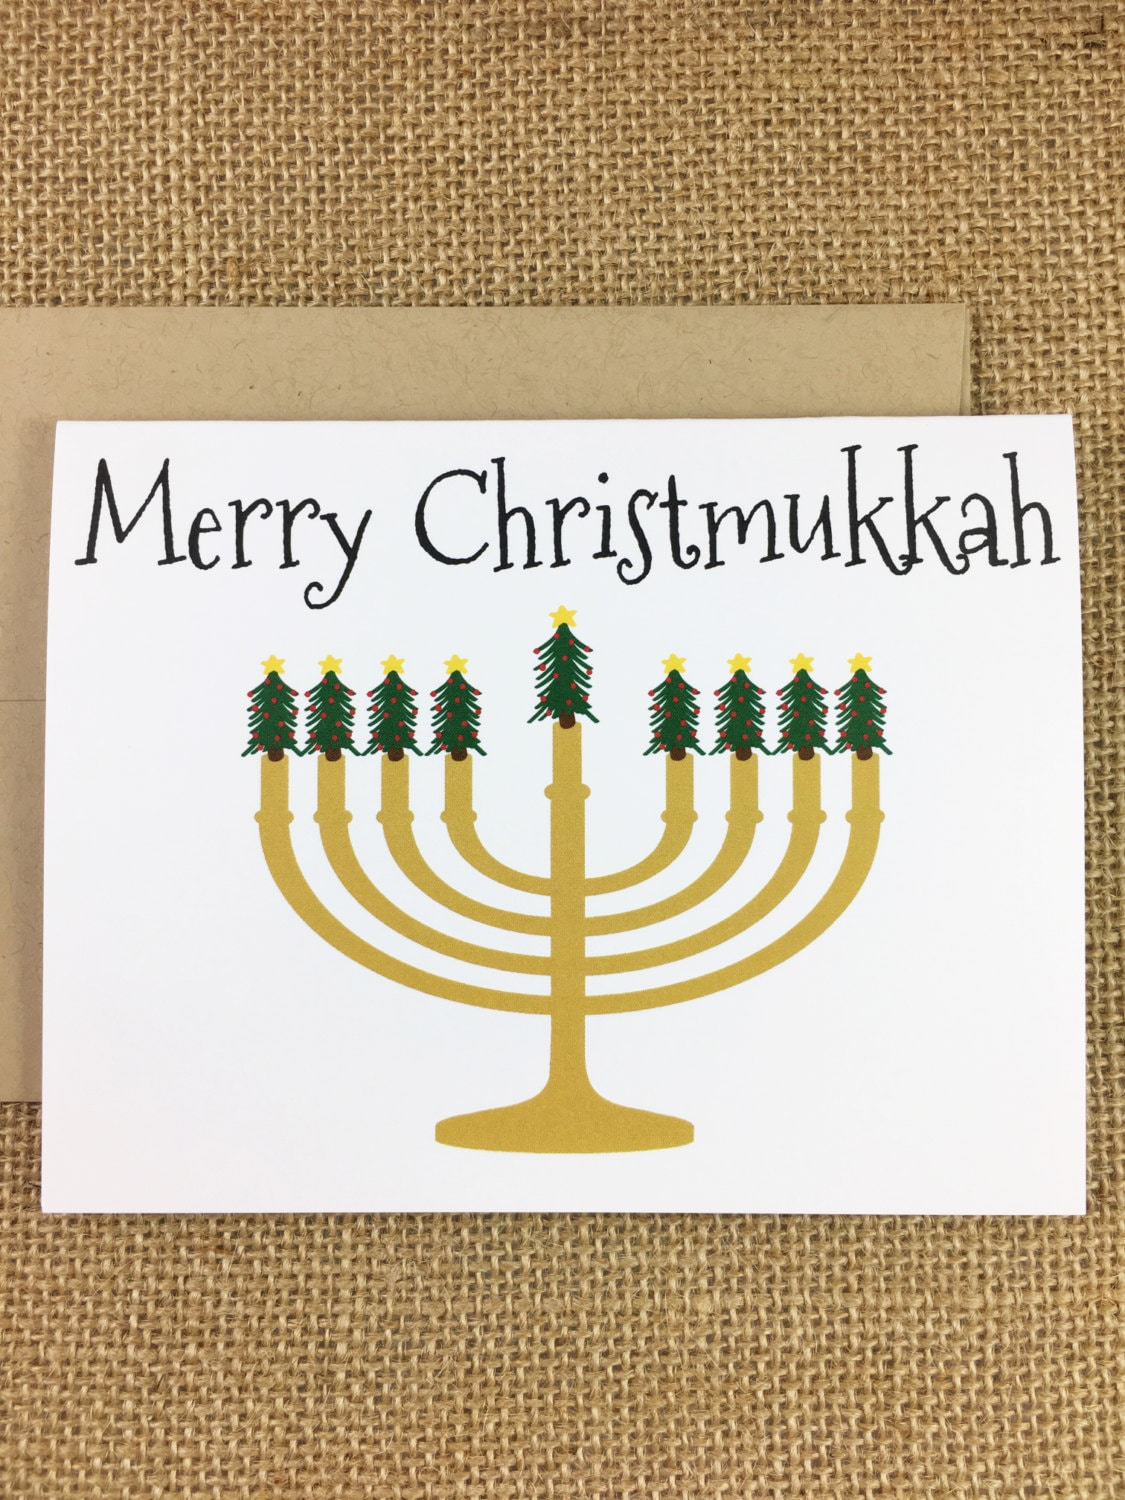 Christmas Hanukkah Card Merry Christmukkah Etsy